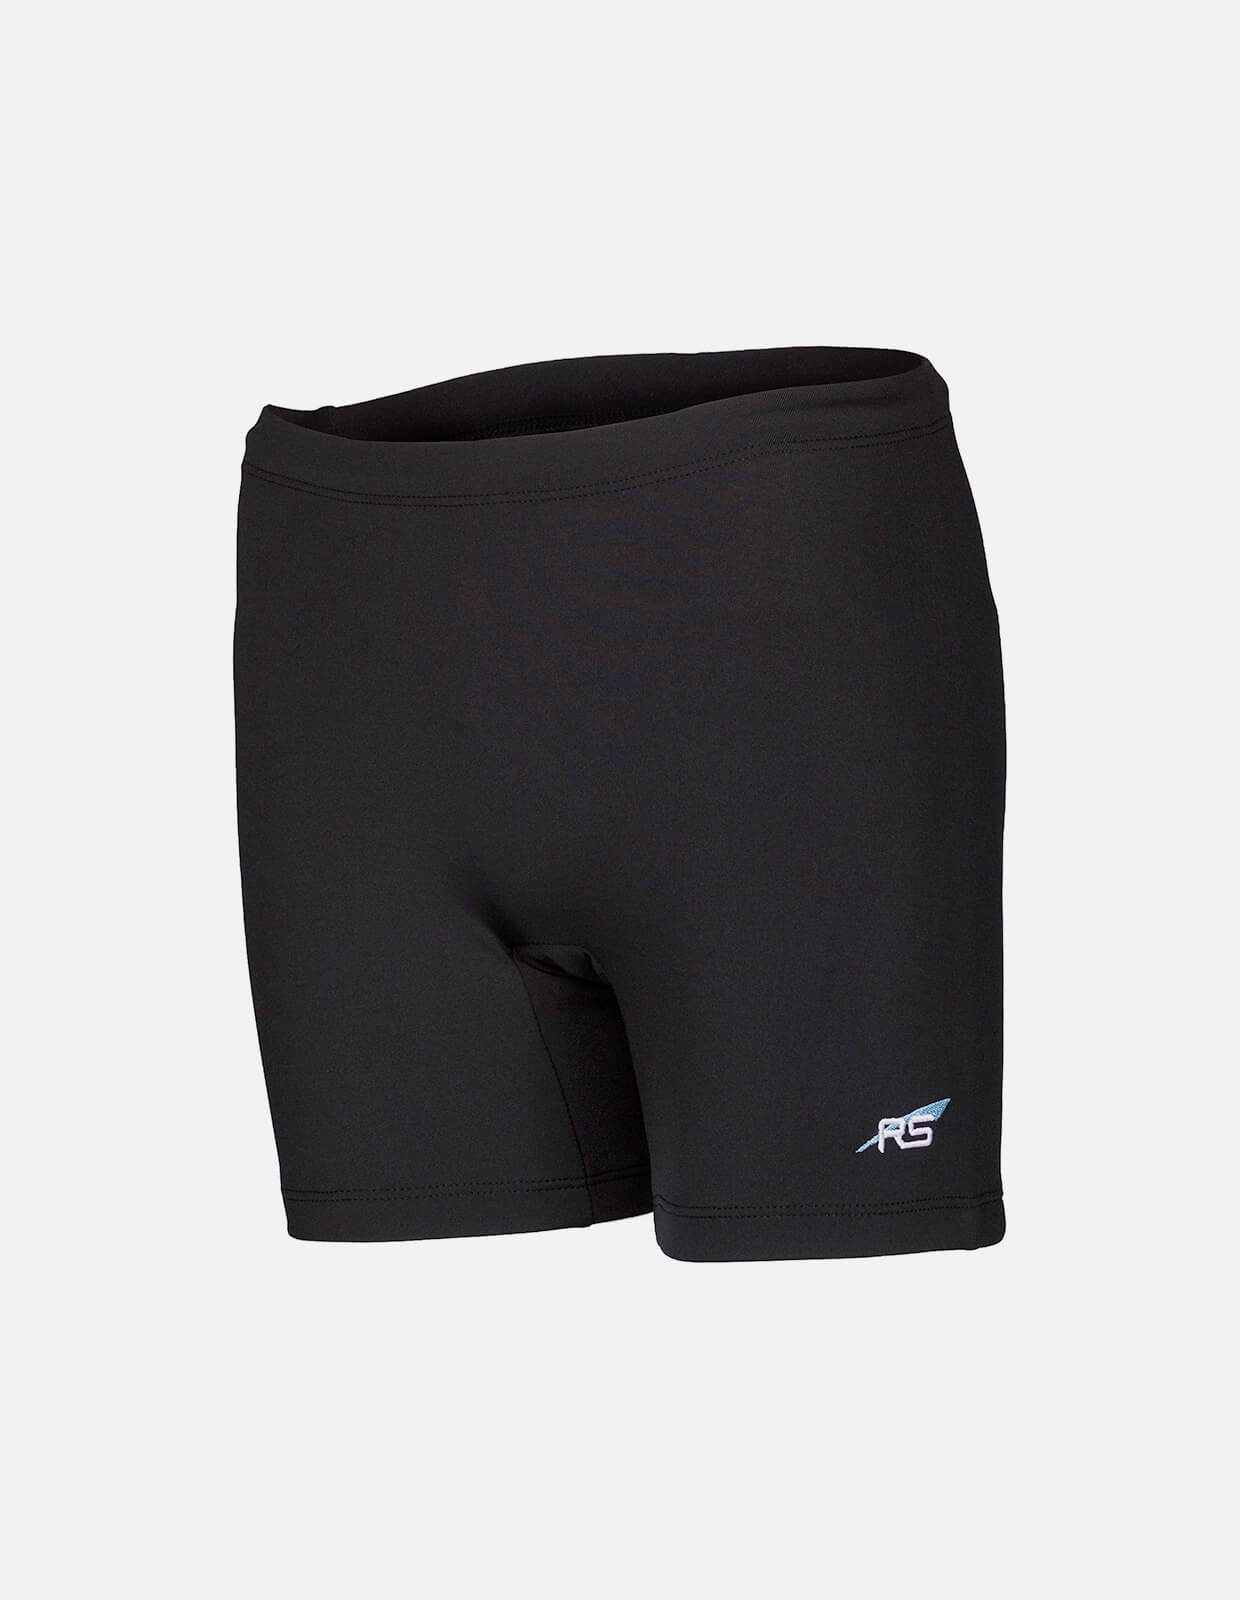 Ergo Short Women Black